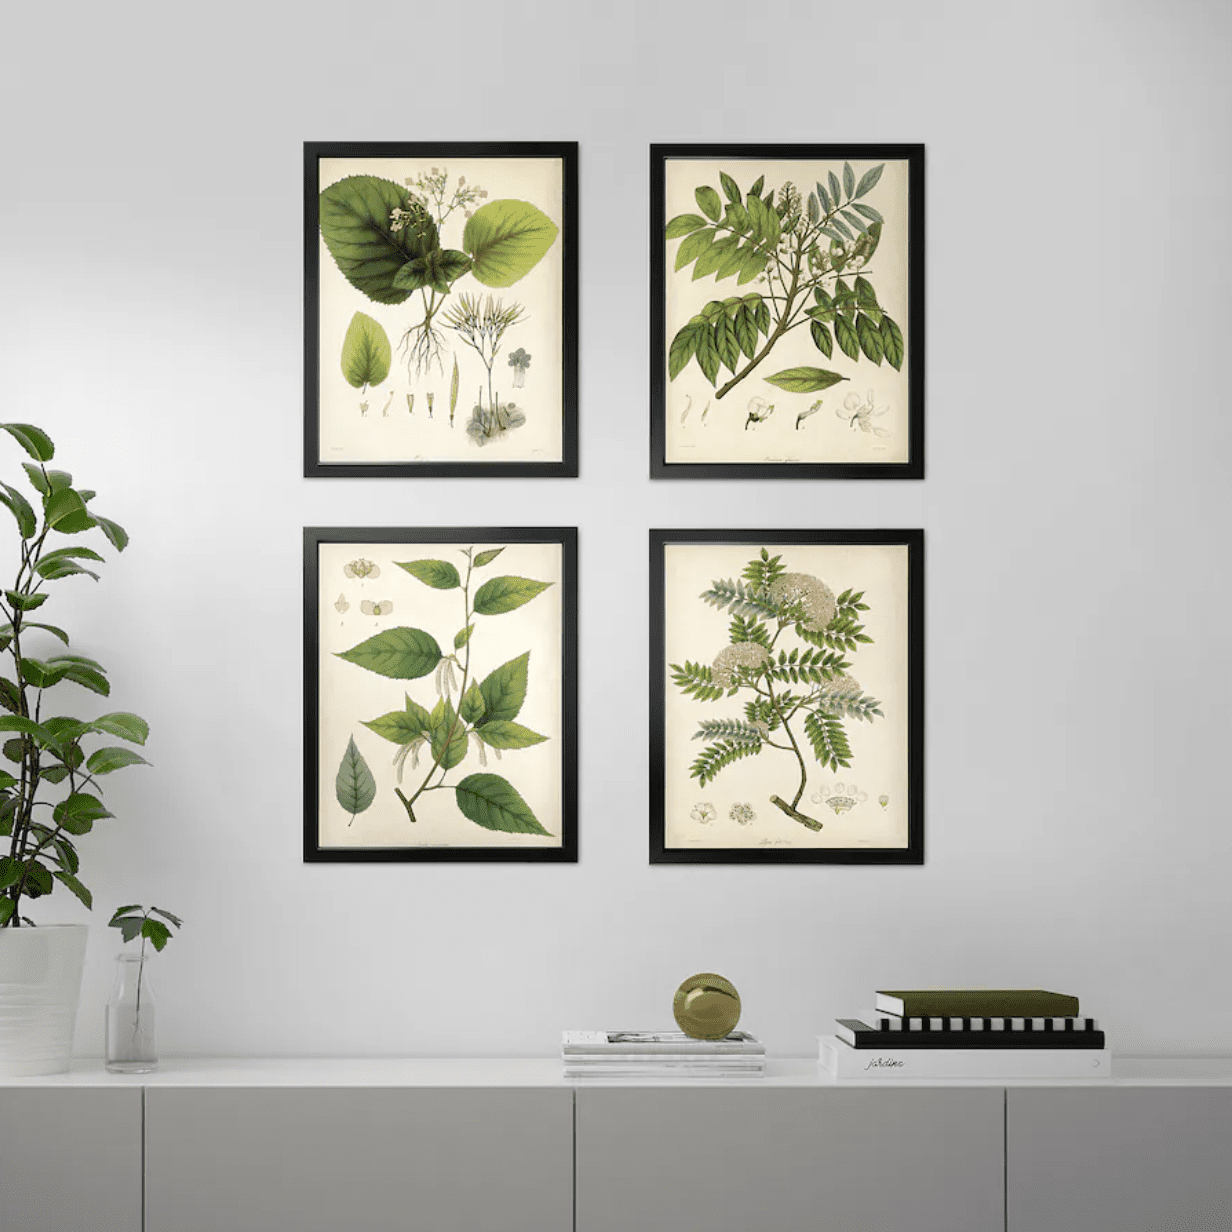 A collection of 4 botanical print posters on a wall